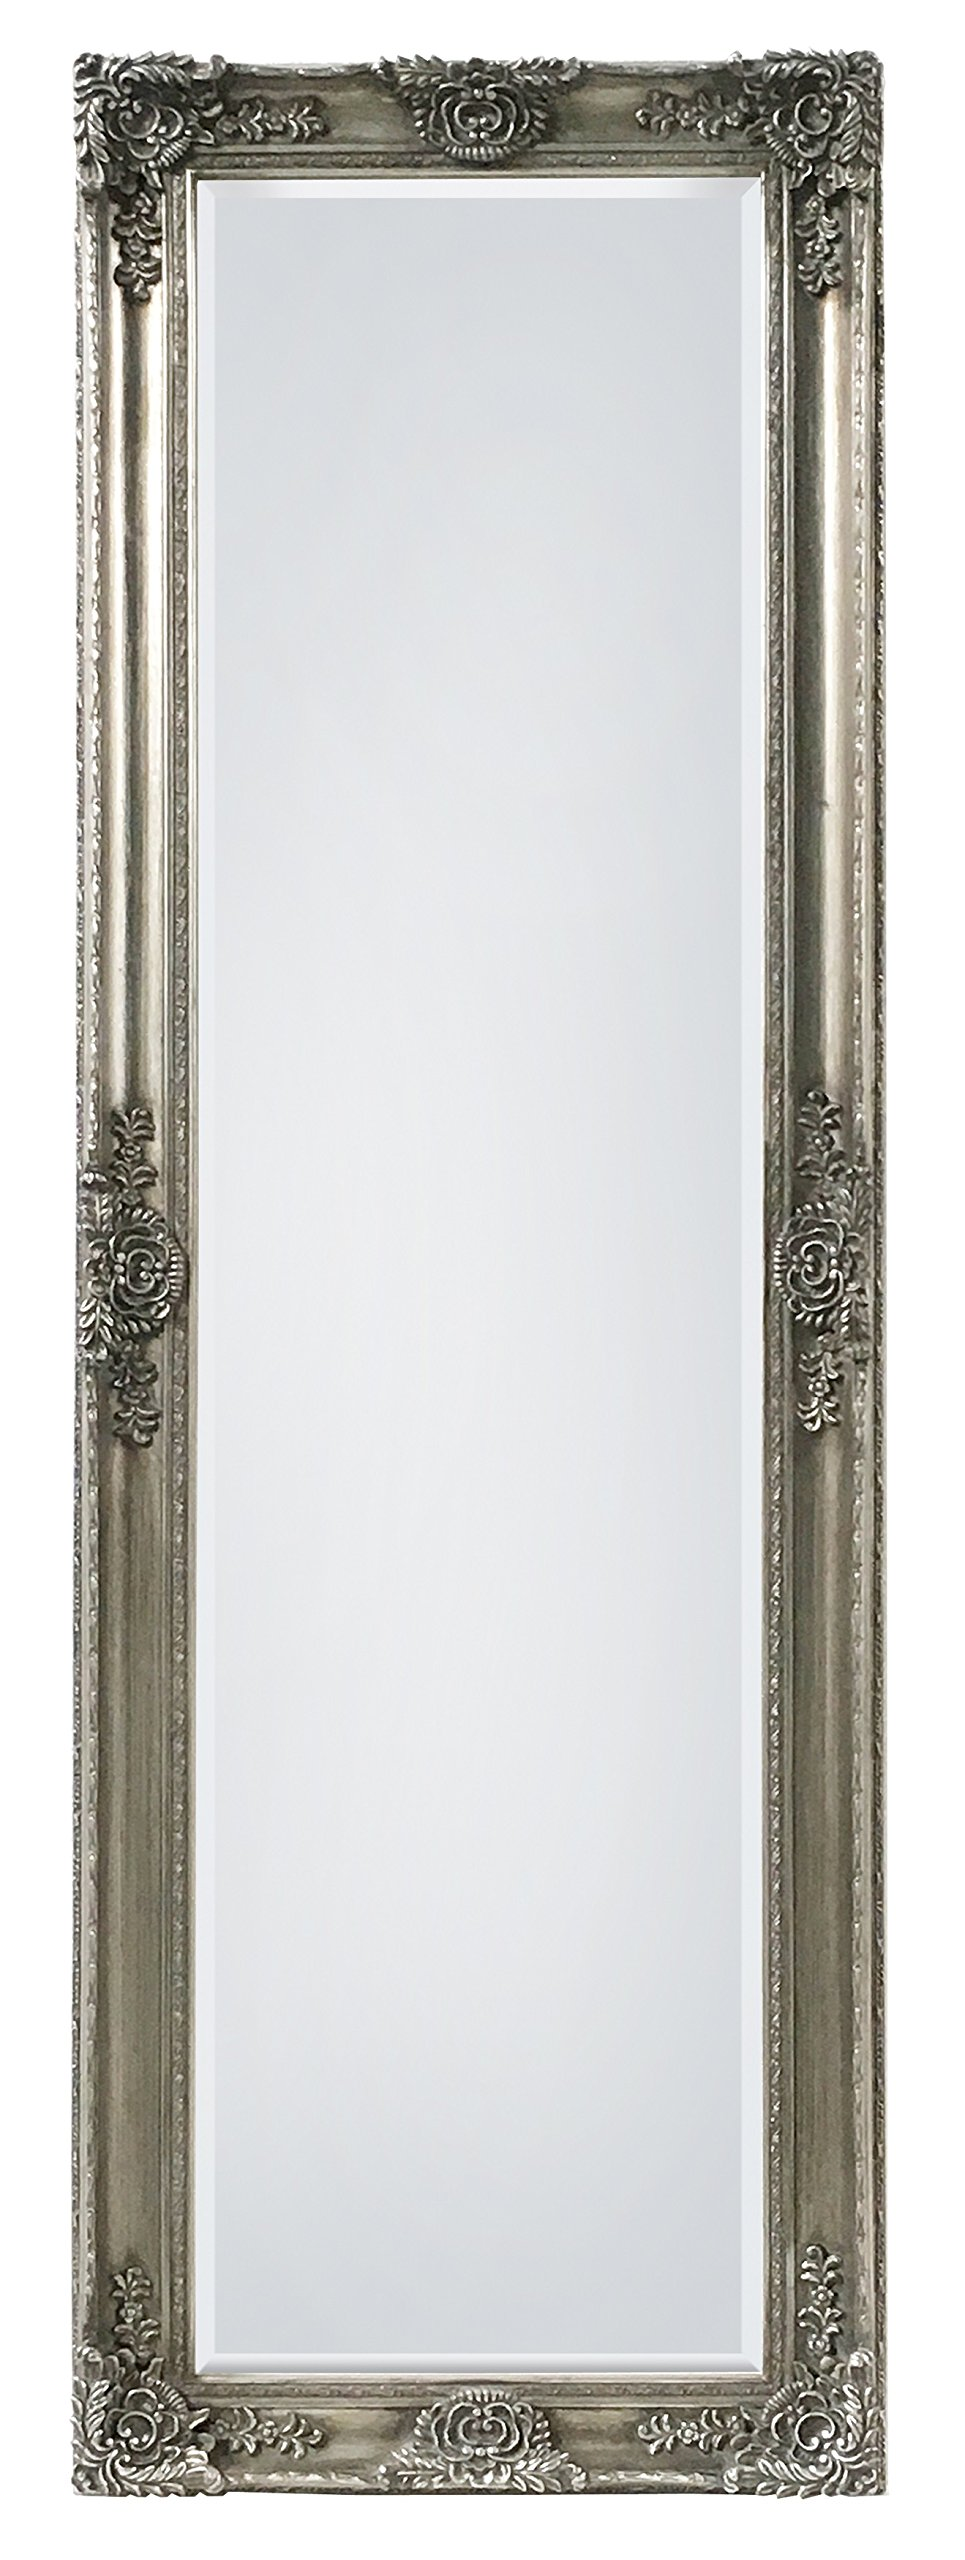 "SBC Decor Mayfair Belle Full Length Mirror, 19"" x 60"" x 2"", Antique Silver - SOLID WOOD FRAME HAND FINISHED IN ANTIQUE SILVER - with intricate molding details. Available in four finishes: Antique Gold, Matte White, Champagne Gold, and Antique Silver. (featured here) EASY TO HANG - No worries about extra tools and installation time! This mirror comes with preinstalled mounting hardware, for vertical or horizontal hanging. REAL BEVELED GLASS - Real 5mm thick glass mirror featuring a 1in bevel, for a truer reflection with a sophisticated edge. - mirrors-bedroom-decor, bedroom-decor, bedroom - 818DfSeMtlL -"